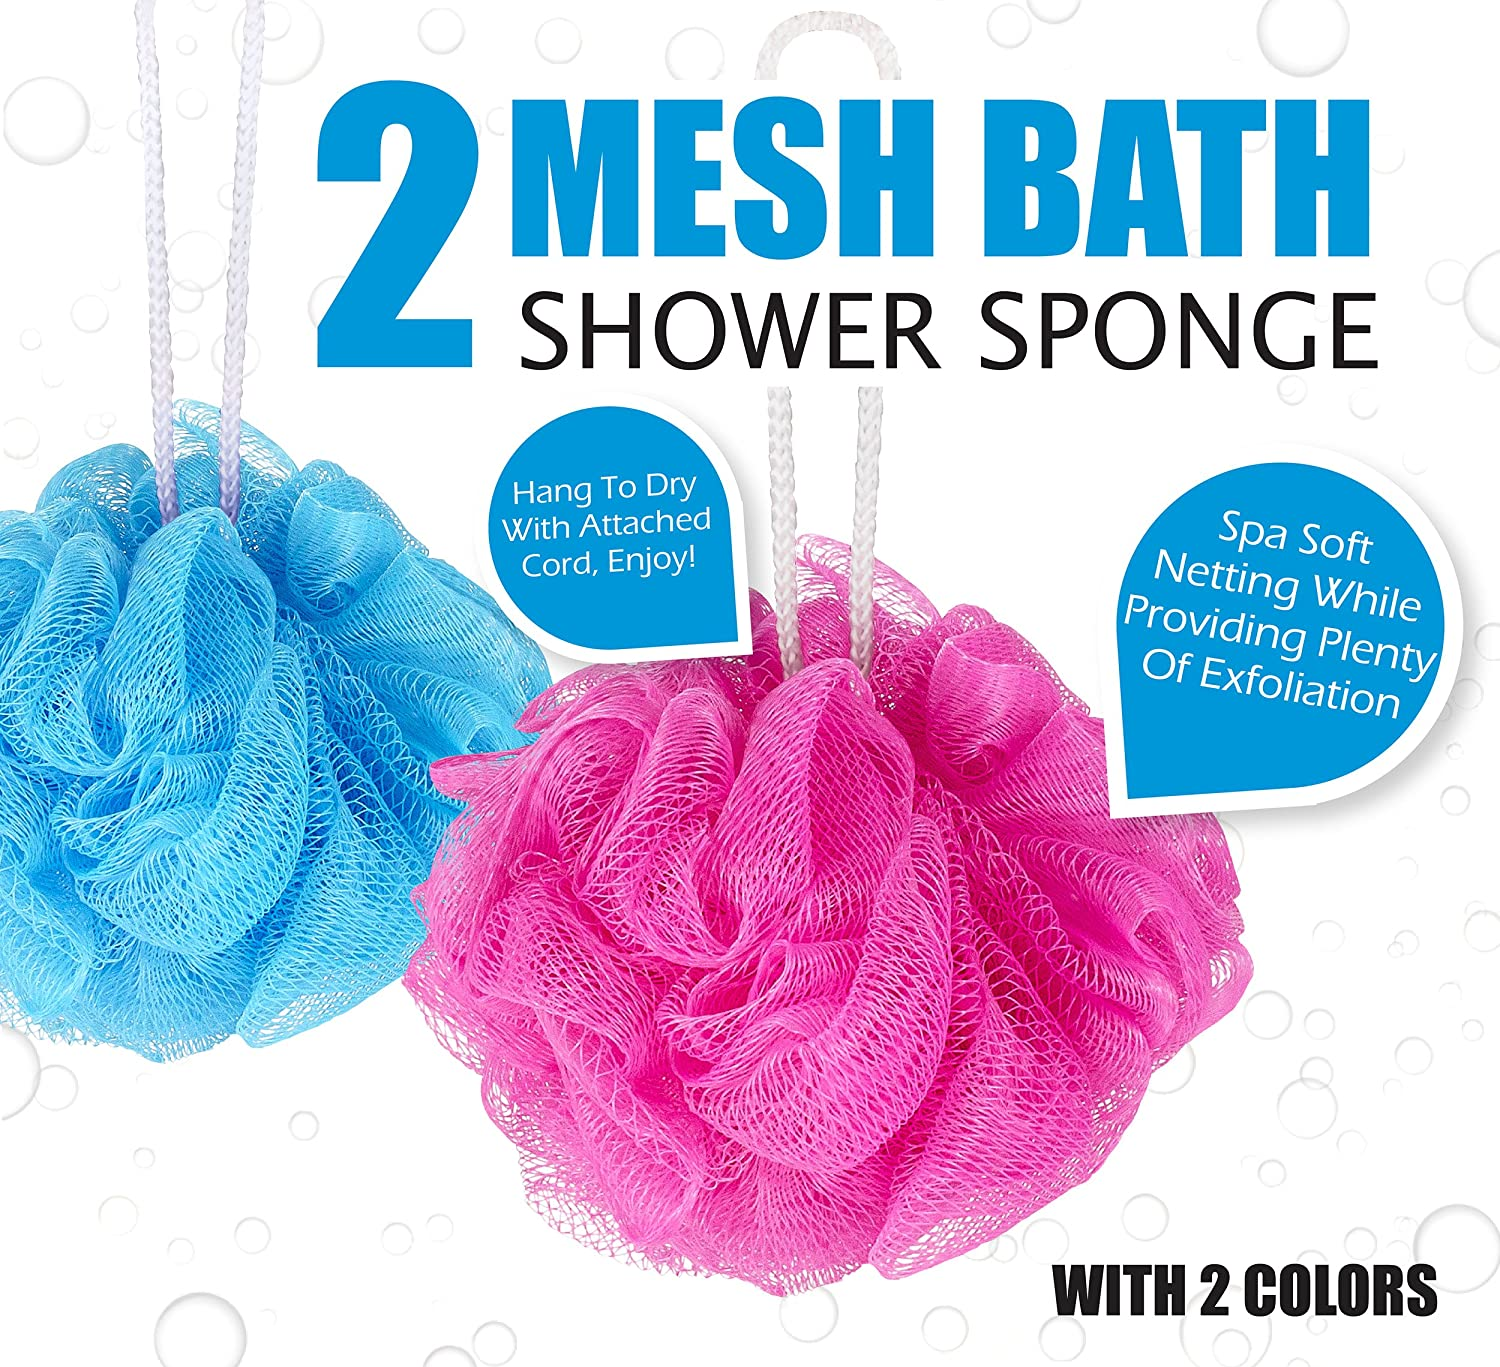 Home Prime Exfoliating Shower Loofah Sponge Pads By 3 Pack of Loofah Sponge Pads + 2 Mesh Pouf Sponges.